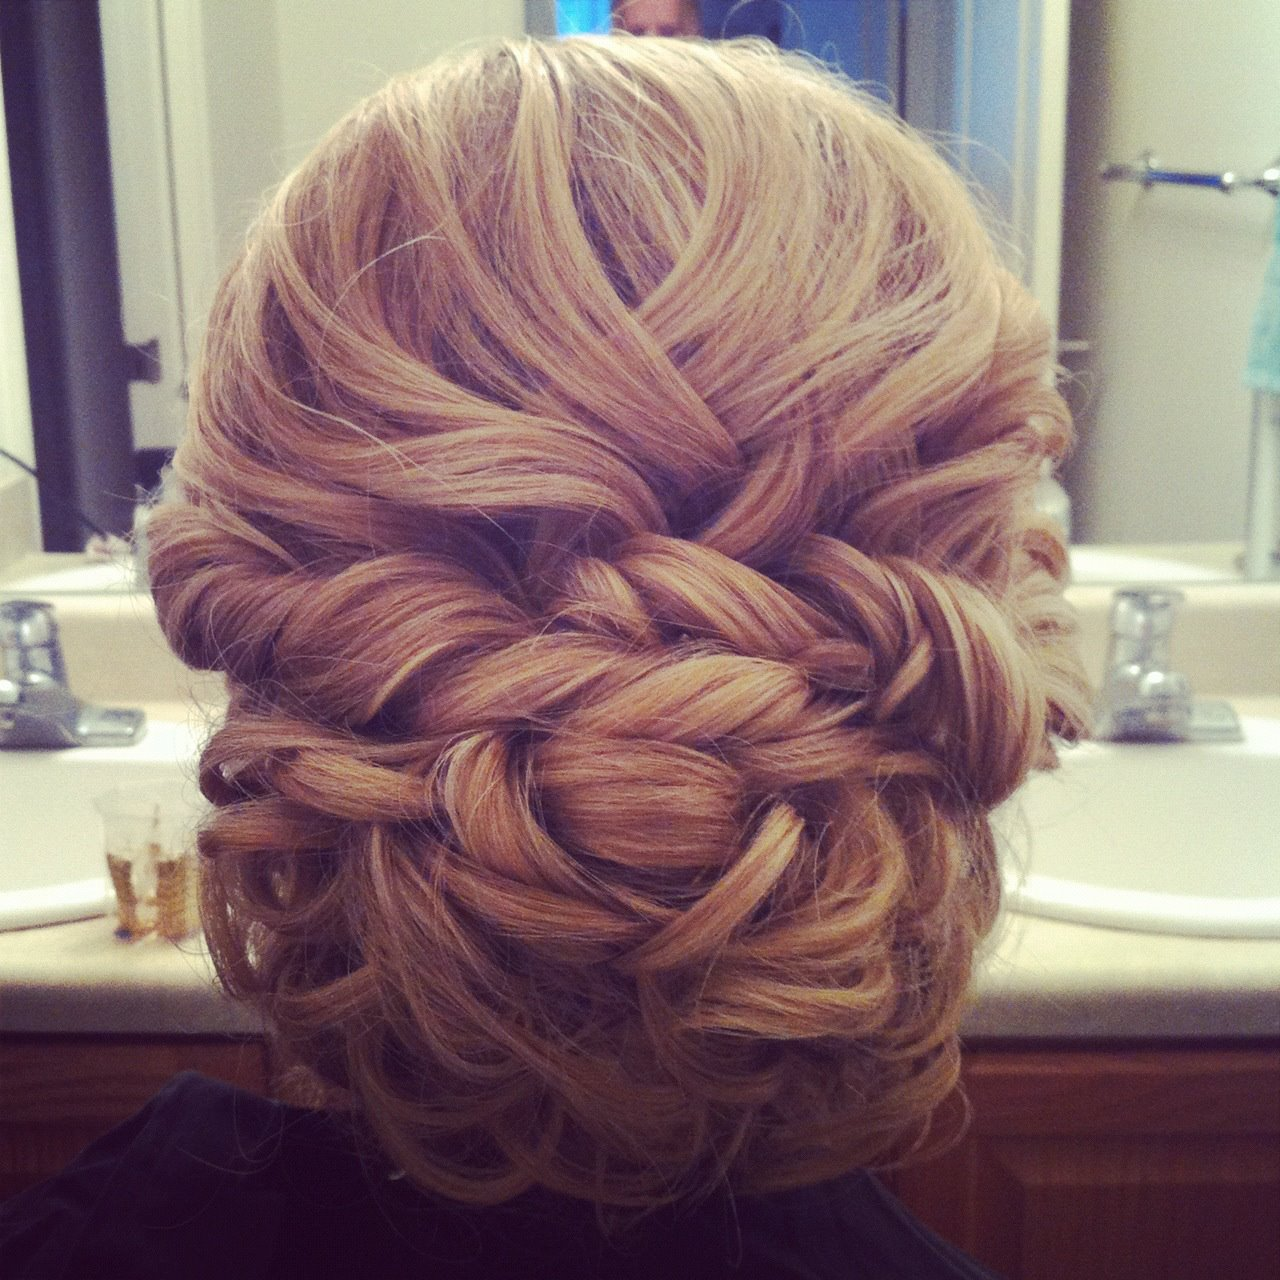 Prom Wedding Hairstyles: Timeless Wedding Hairstyles From Hair And Makeup By Steph